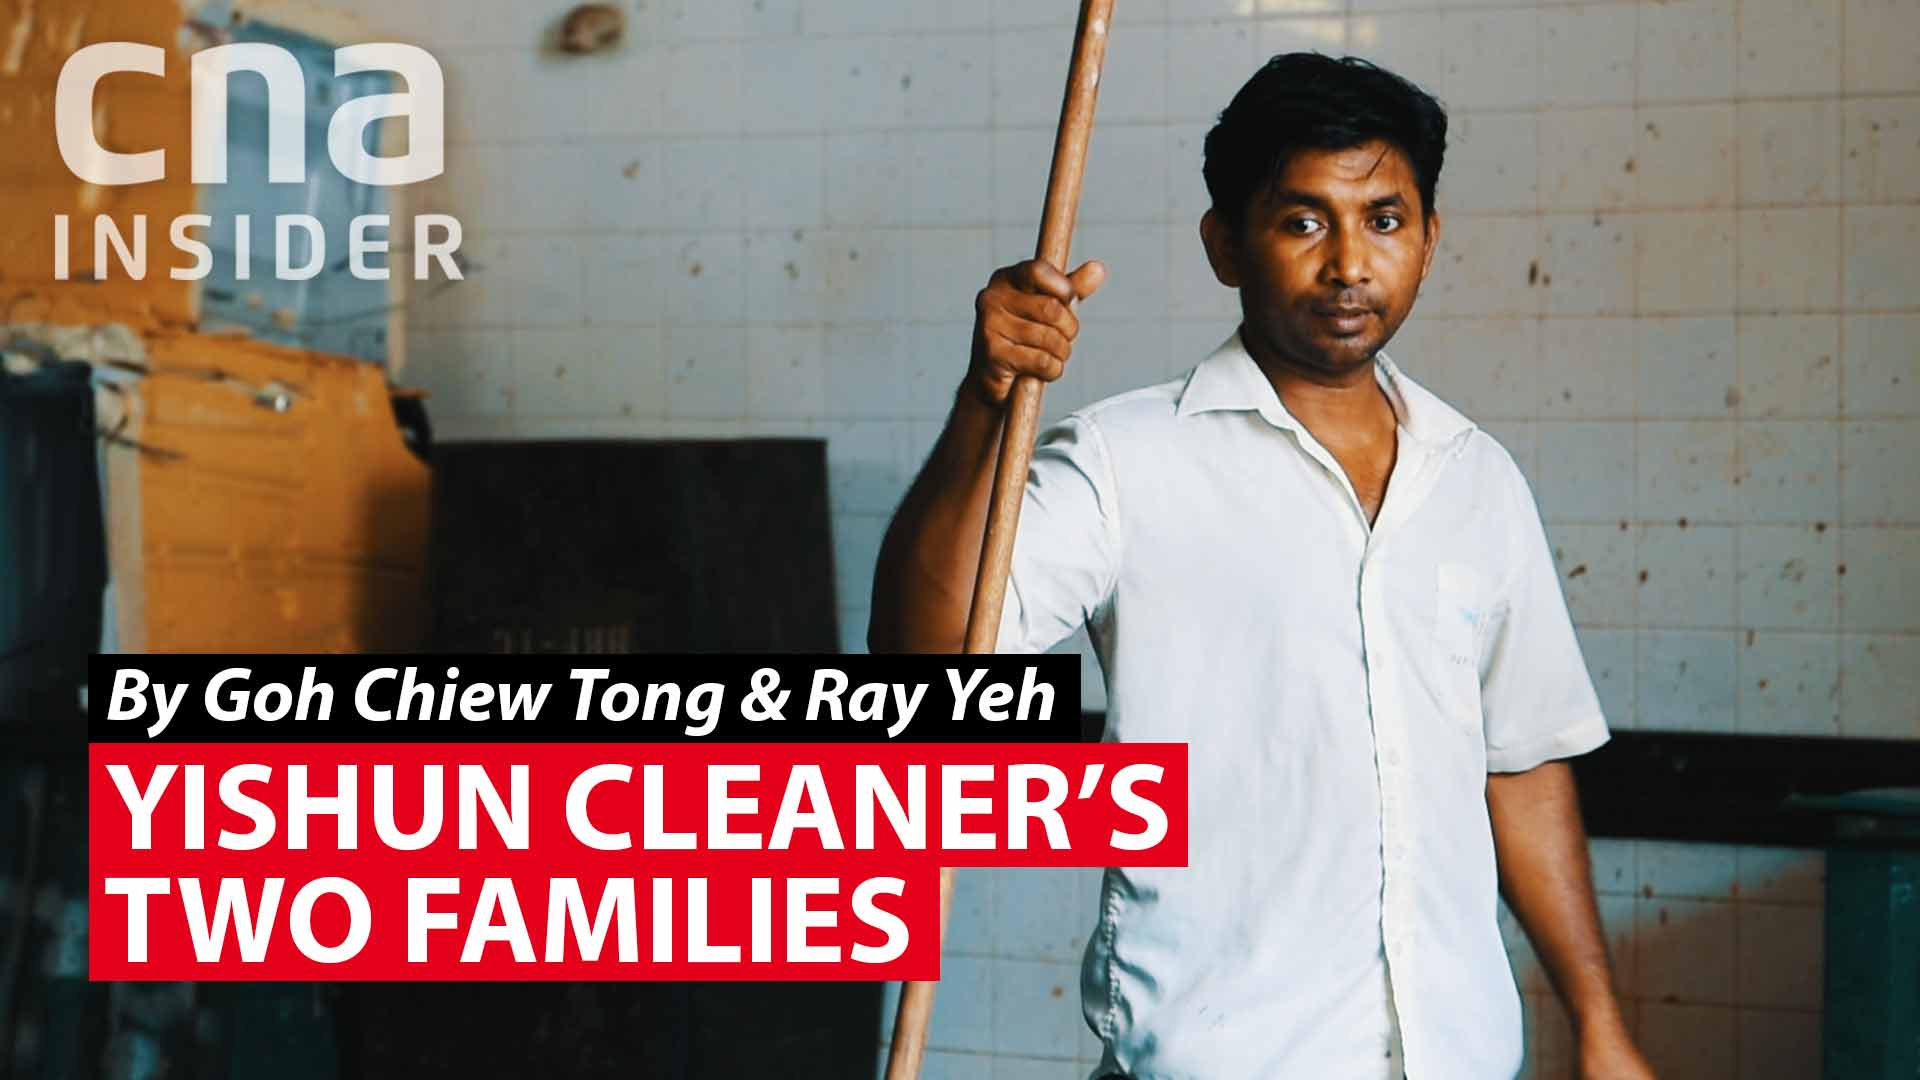 This Yishun cleaner and his two families